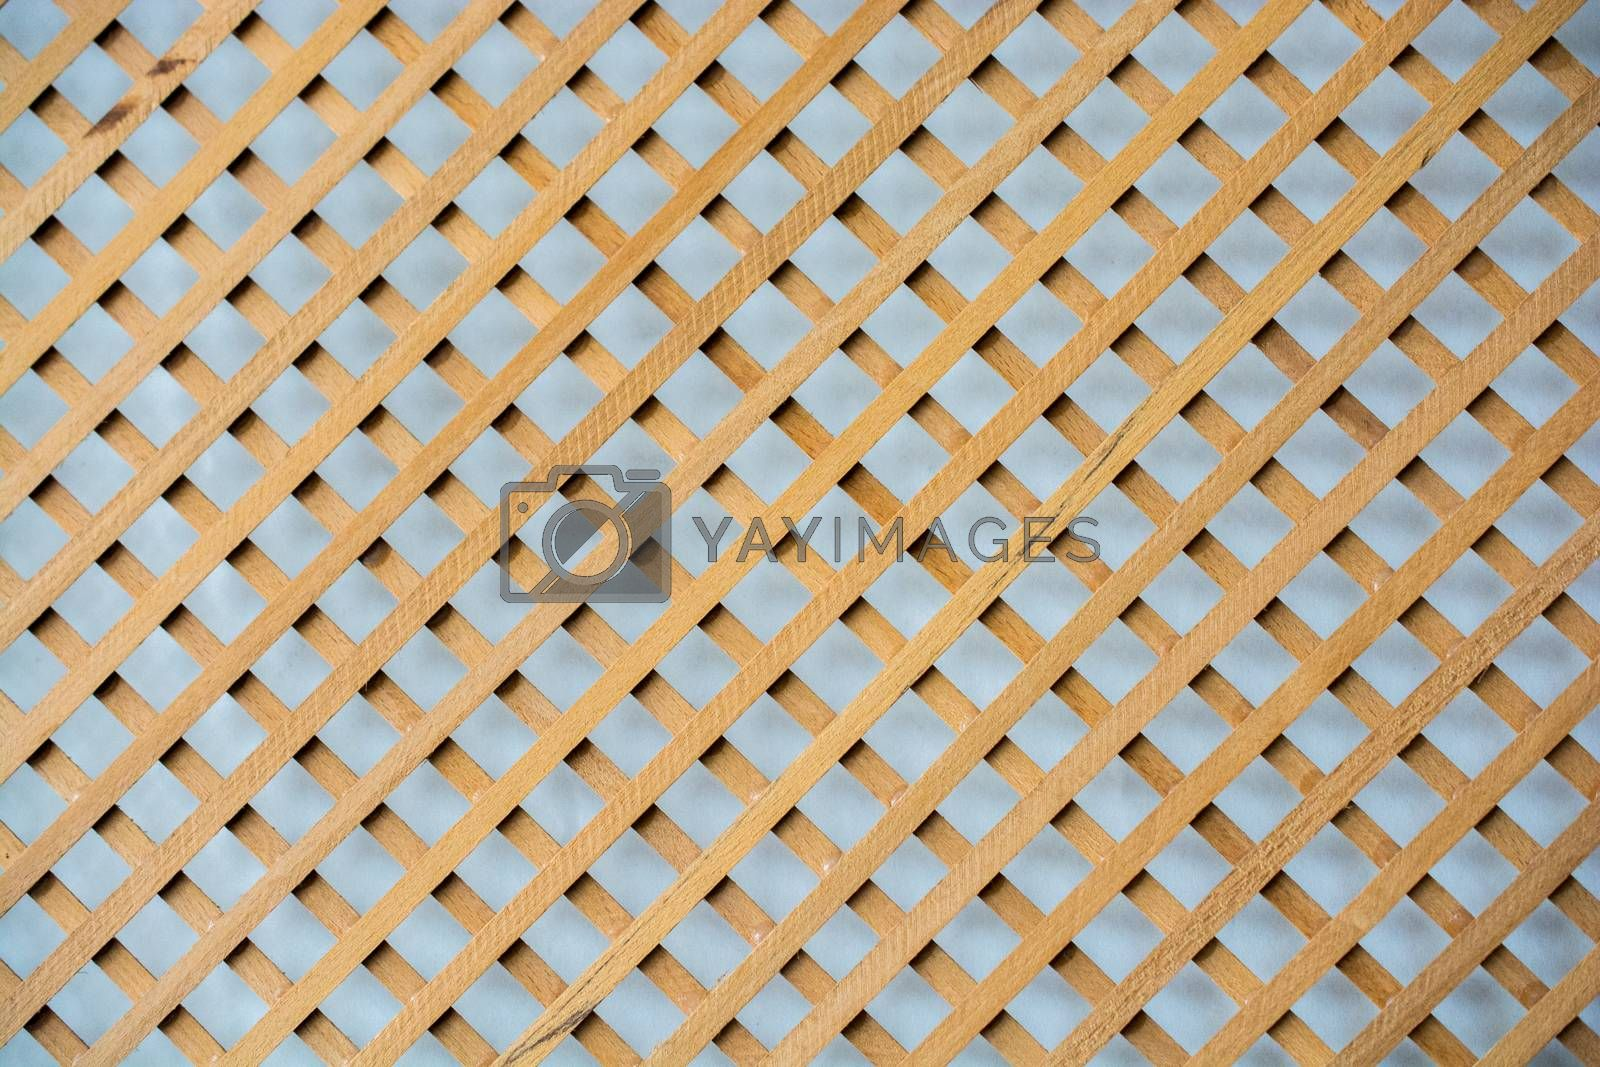 Backdrop and background texture details in abstract form on wood